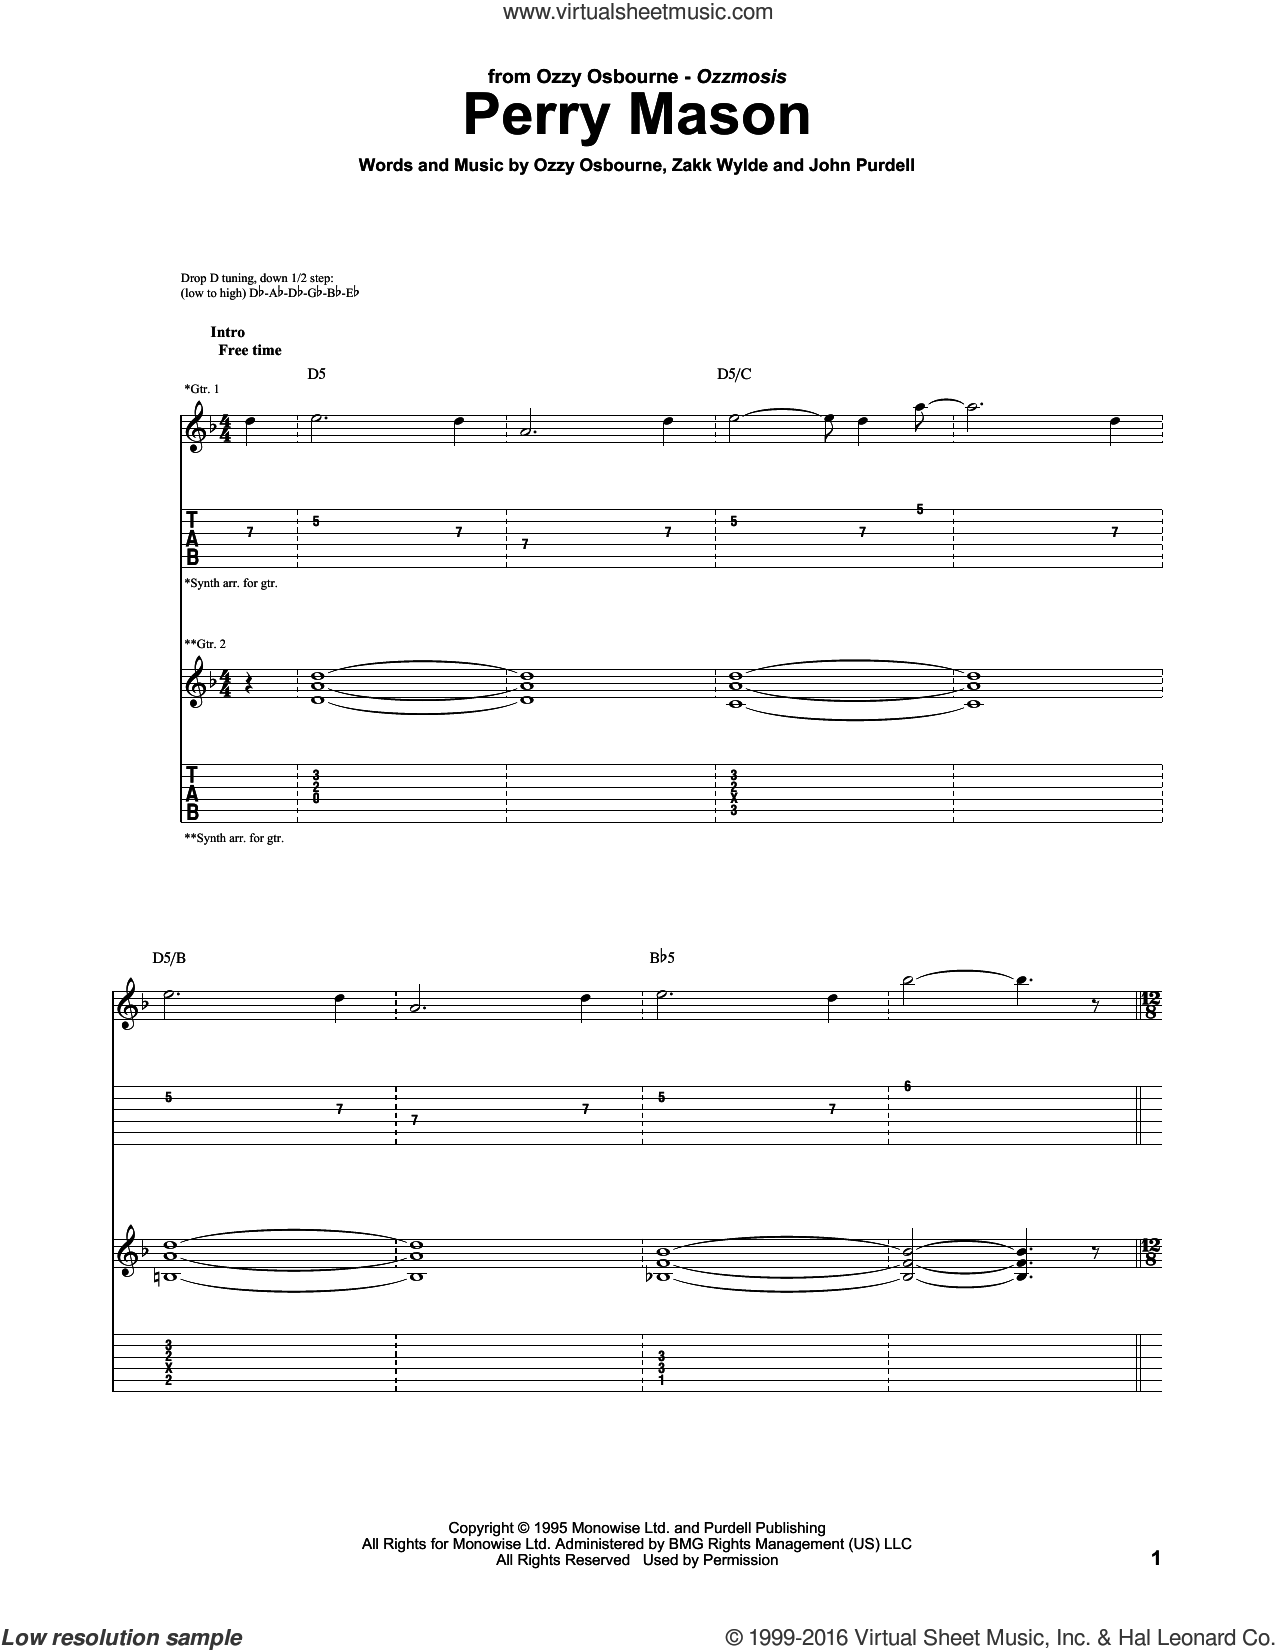 Perry Mason sheet music for guitar (tablature) by Ozzy Osbourne, John Purdell and Zakk Wylde, intermediate skill level